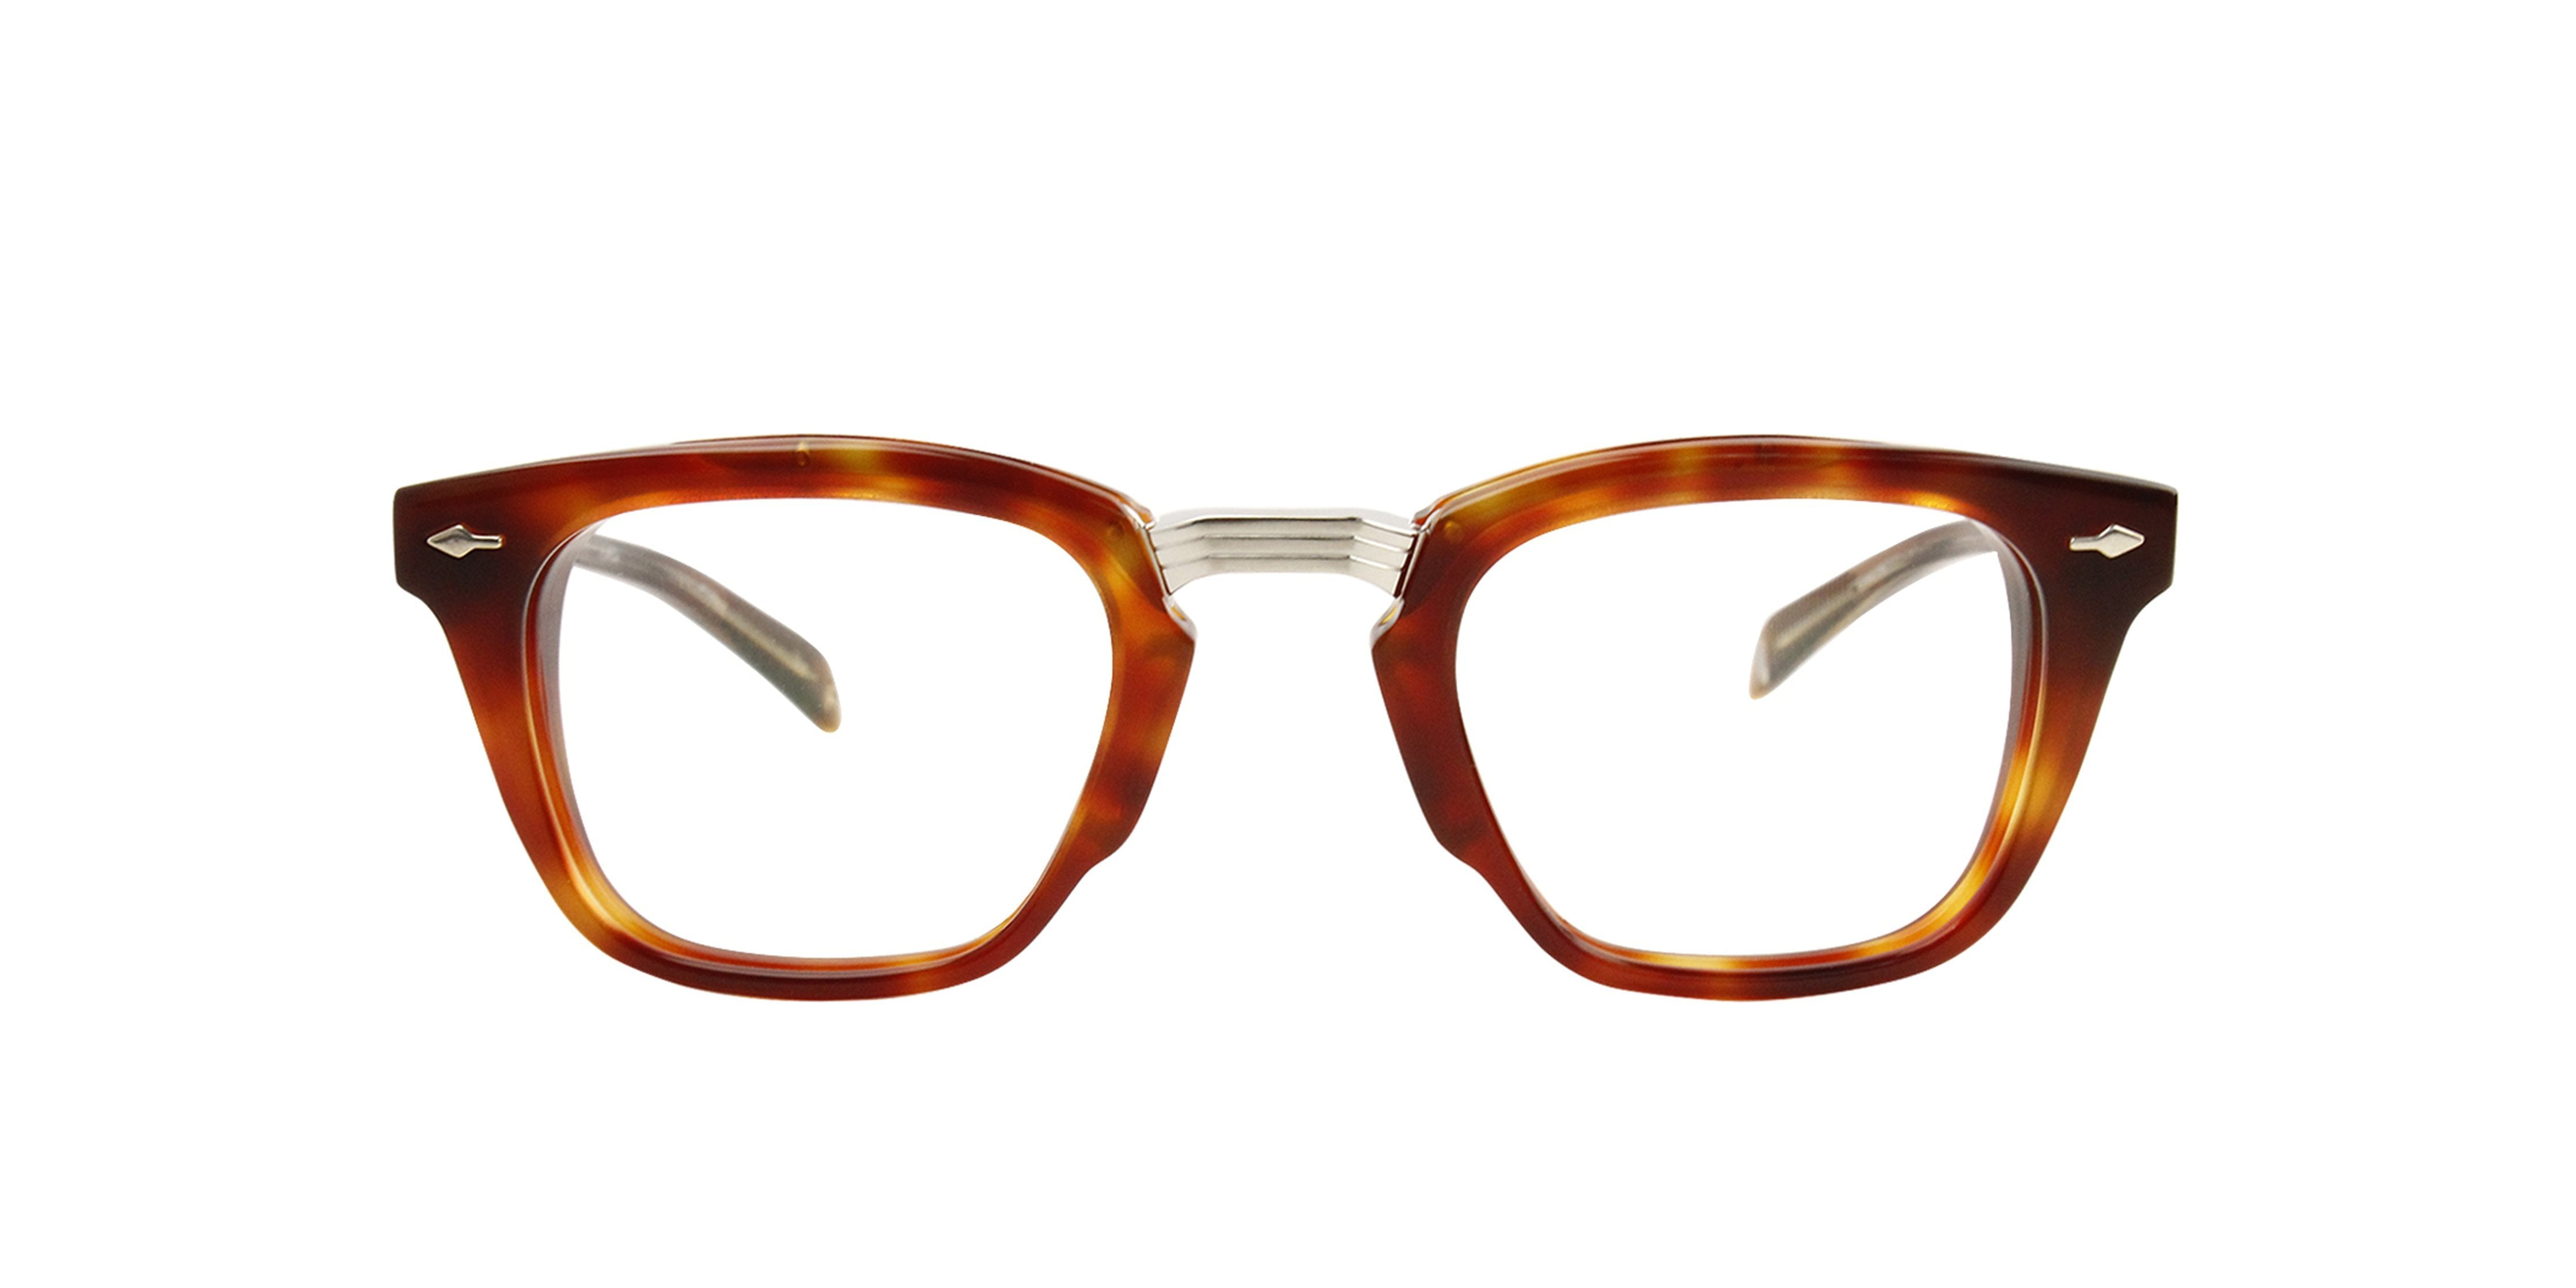 Jacques Marie Mage - Arcole Brown/Clear Rectangular Unisex Eyeglasses - 40mm-Eyeglasses-Designer Eyes